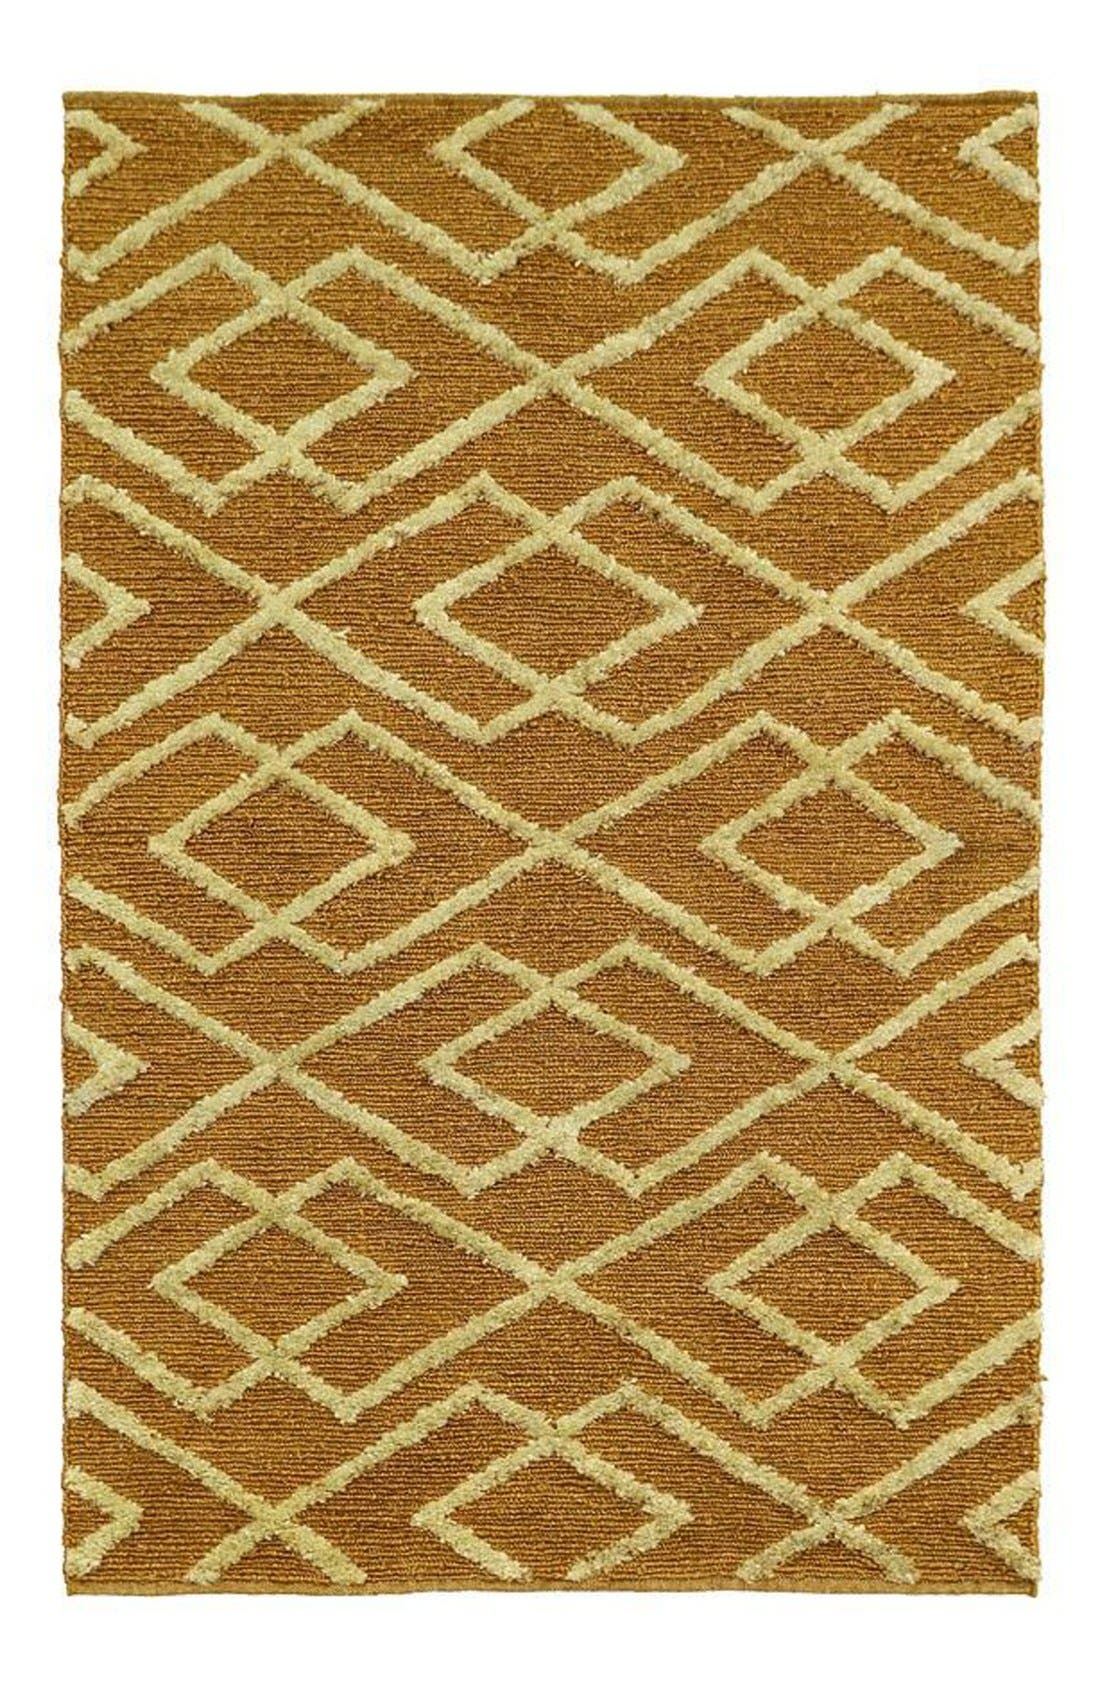 Villa Home Collection Soumak Aura Handwoven Rug